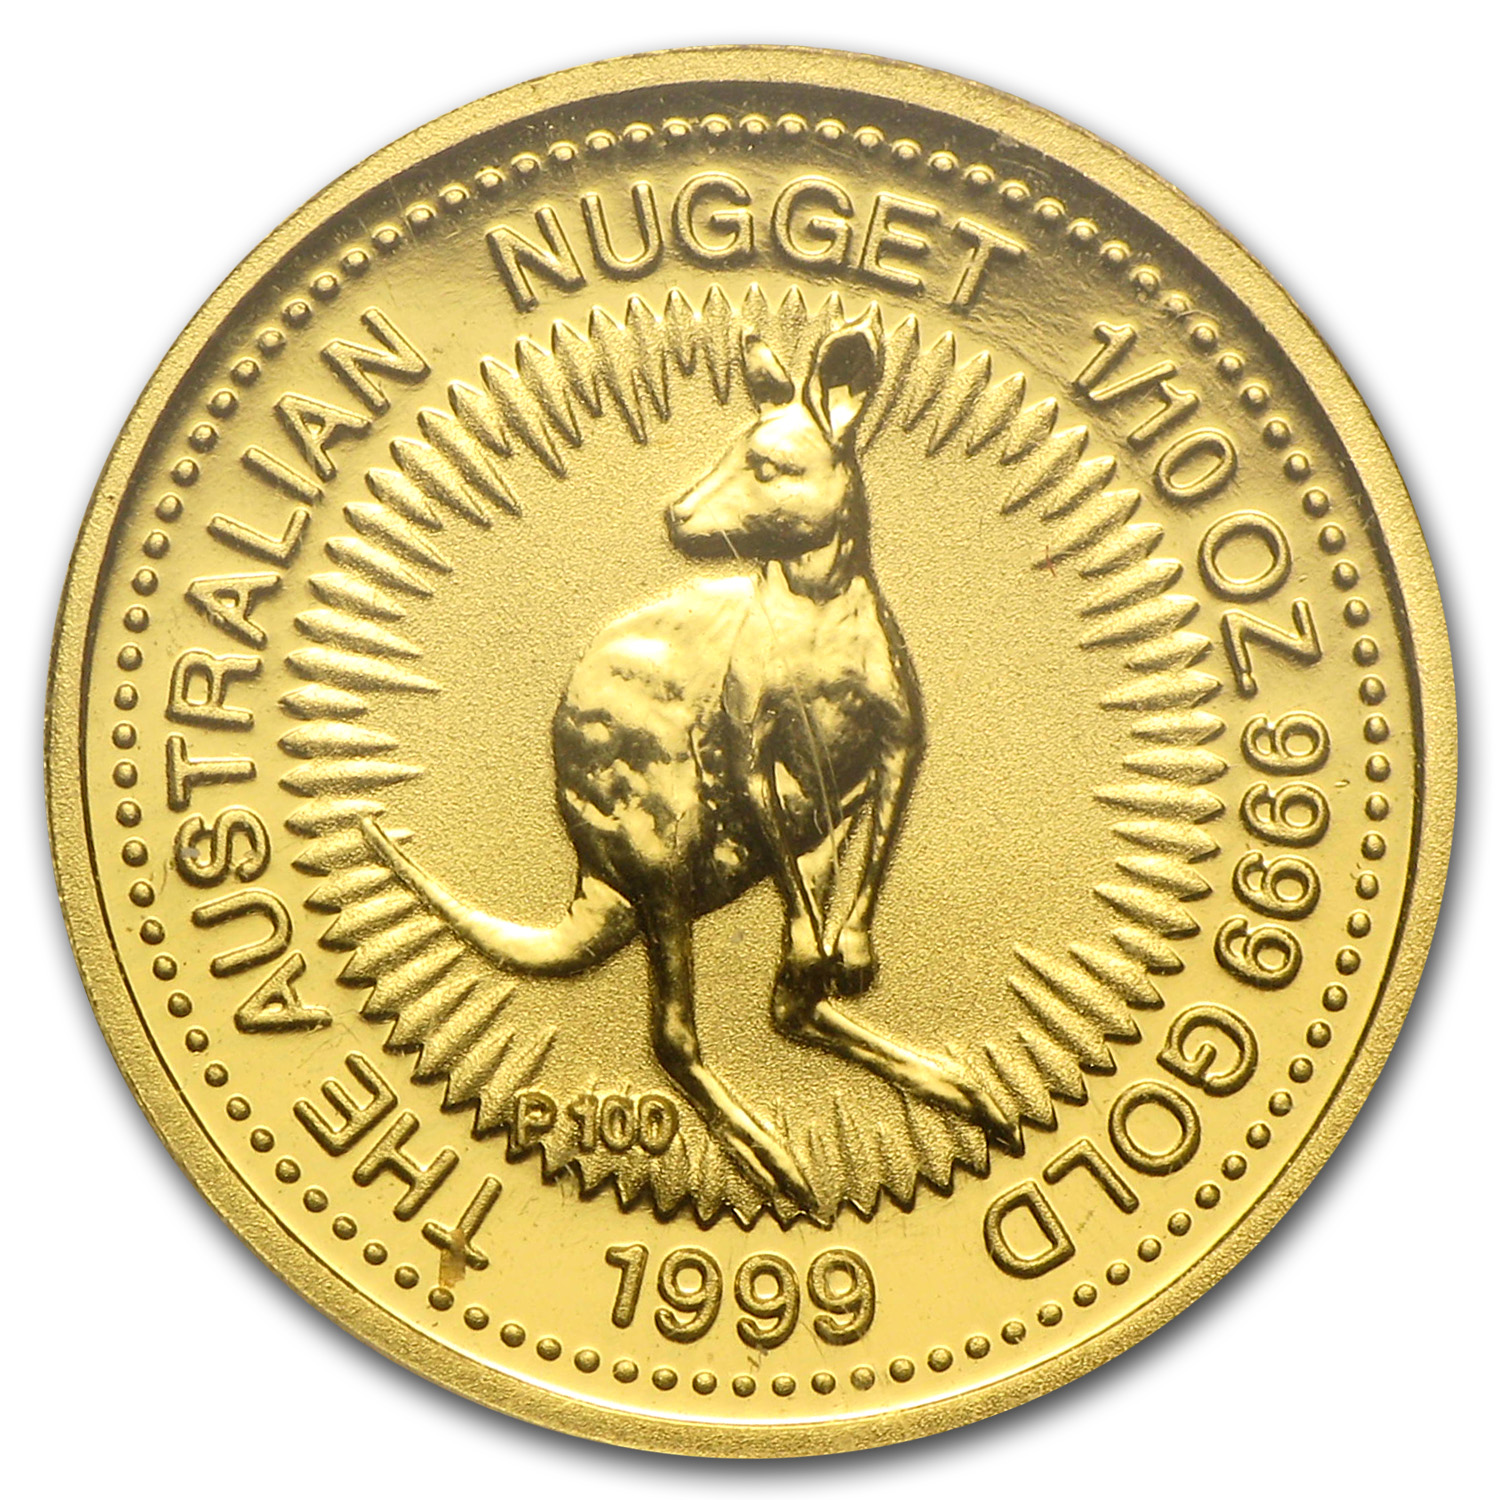 1999 Australia 1/10 oz Gold Nugget